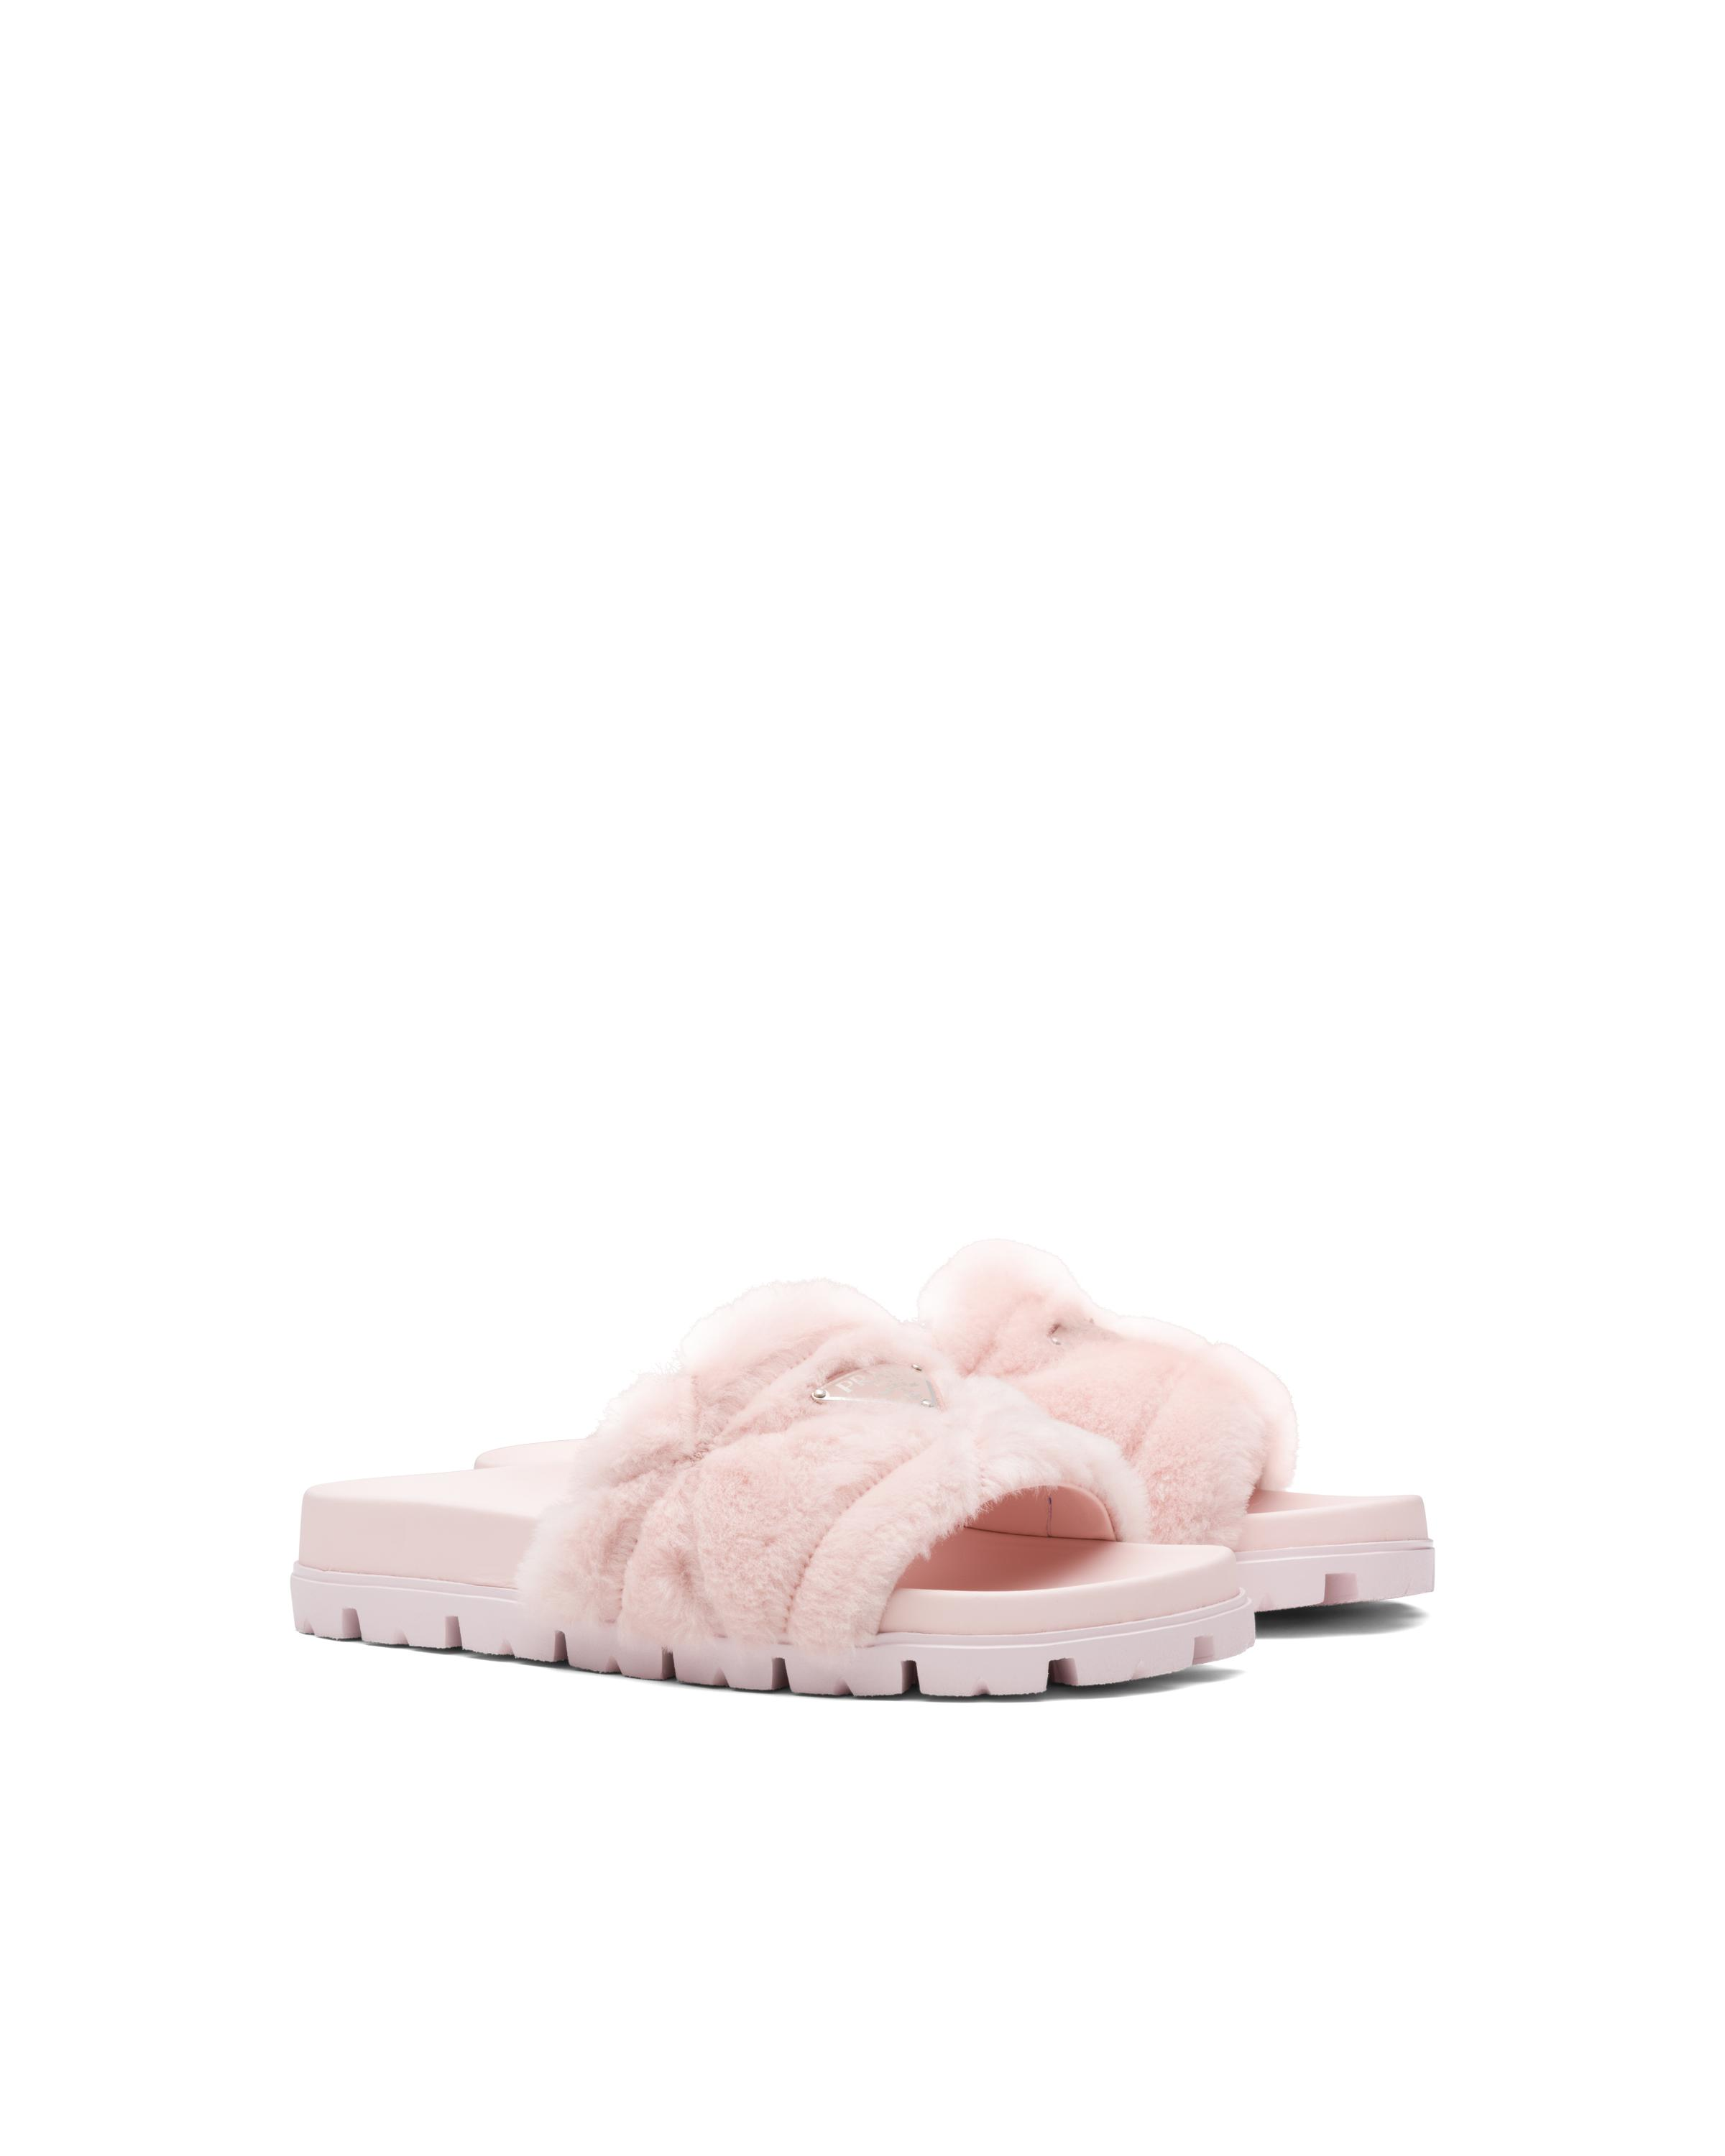 Shearling Slides Women Orchid Pink 5